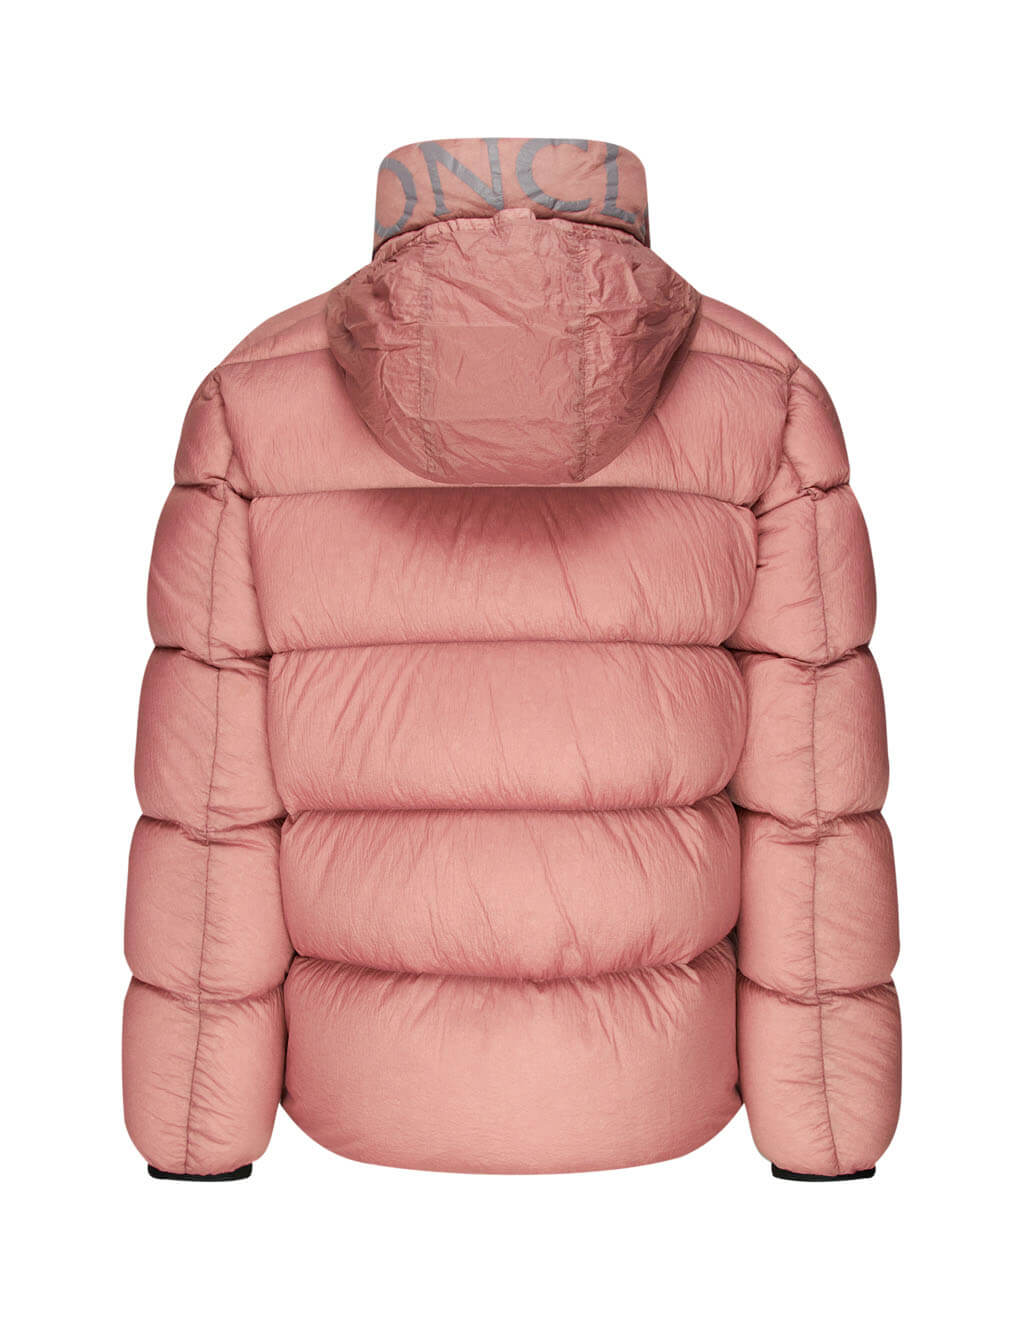 Moncler Men's Giulio Fashion Pink Cevenne Jacket 0911A56960C0611512